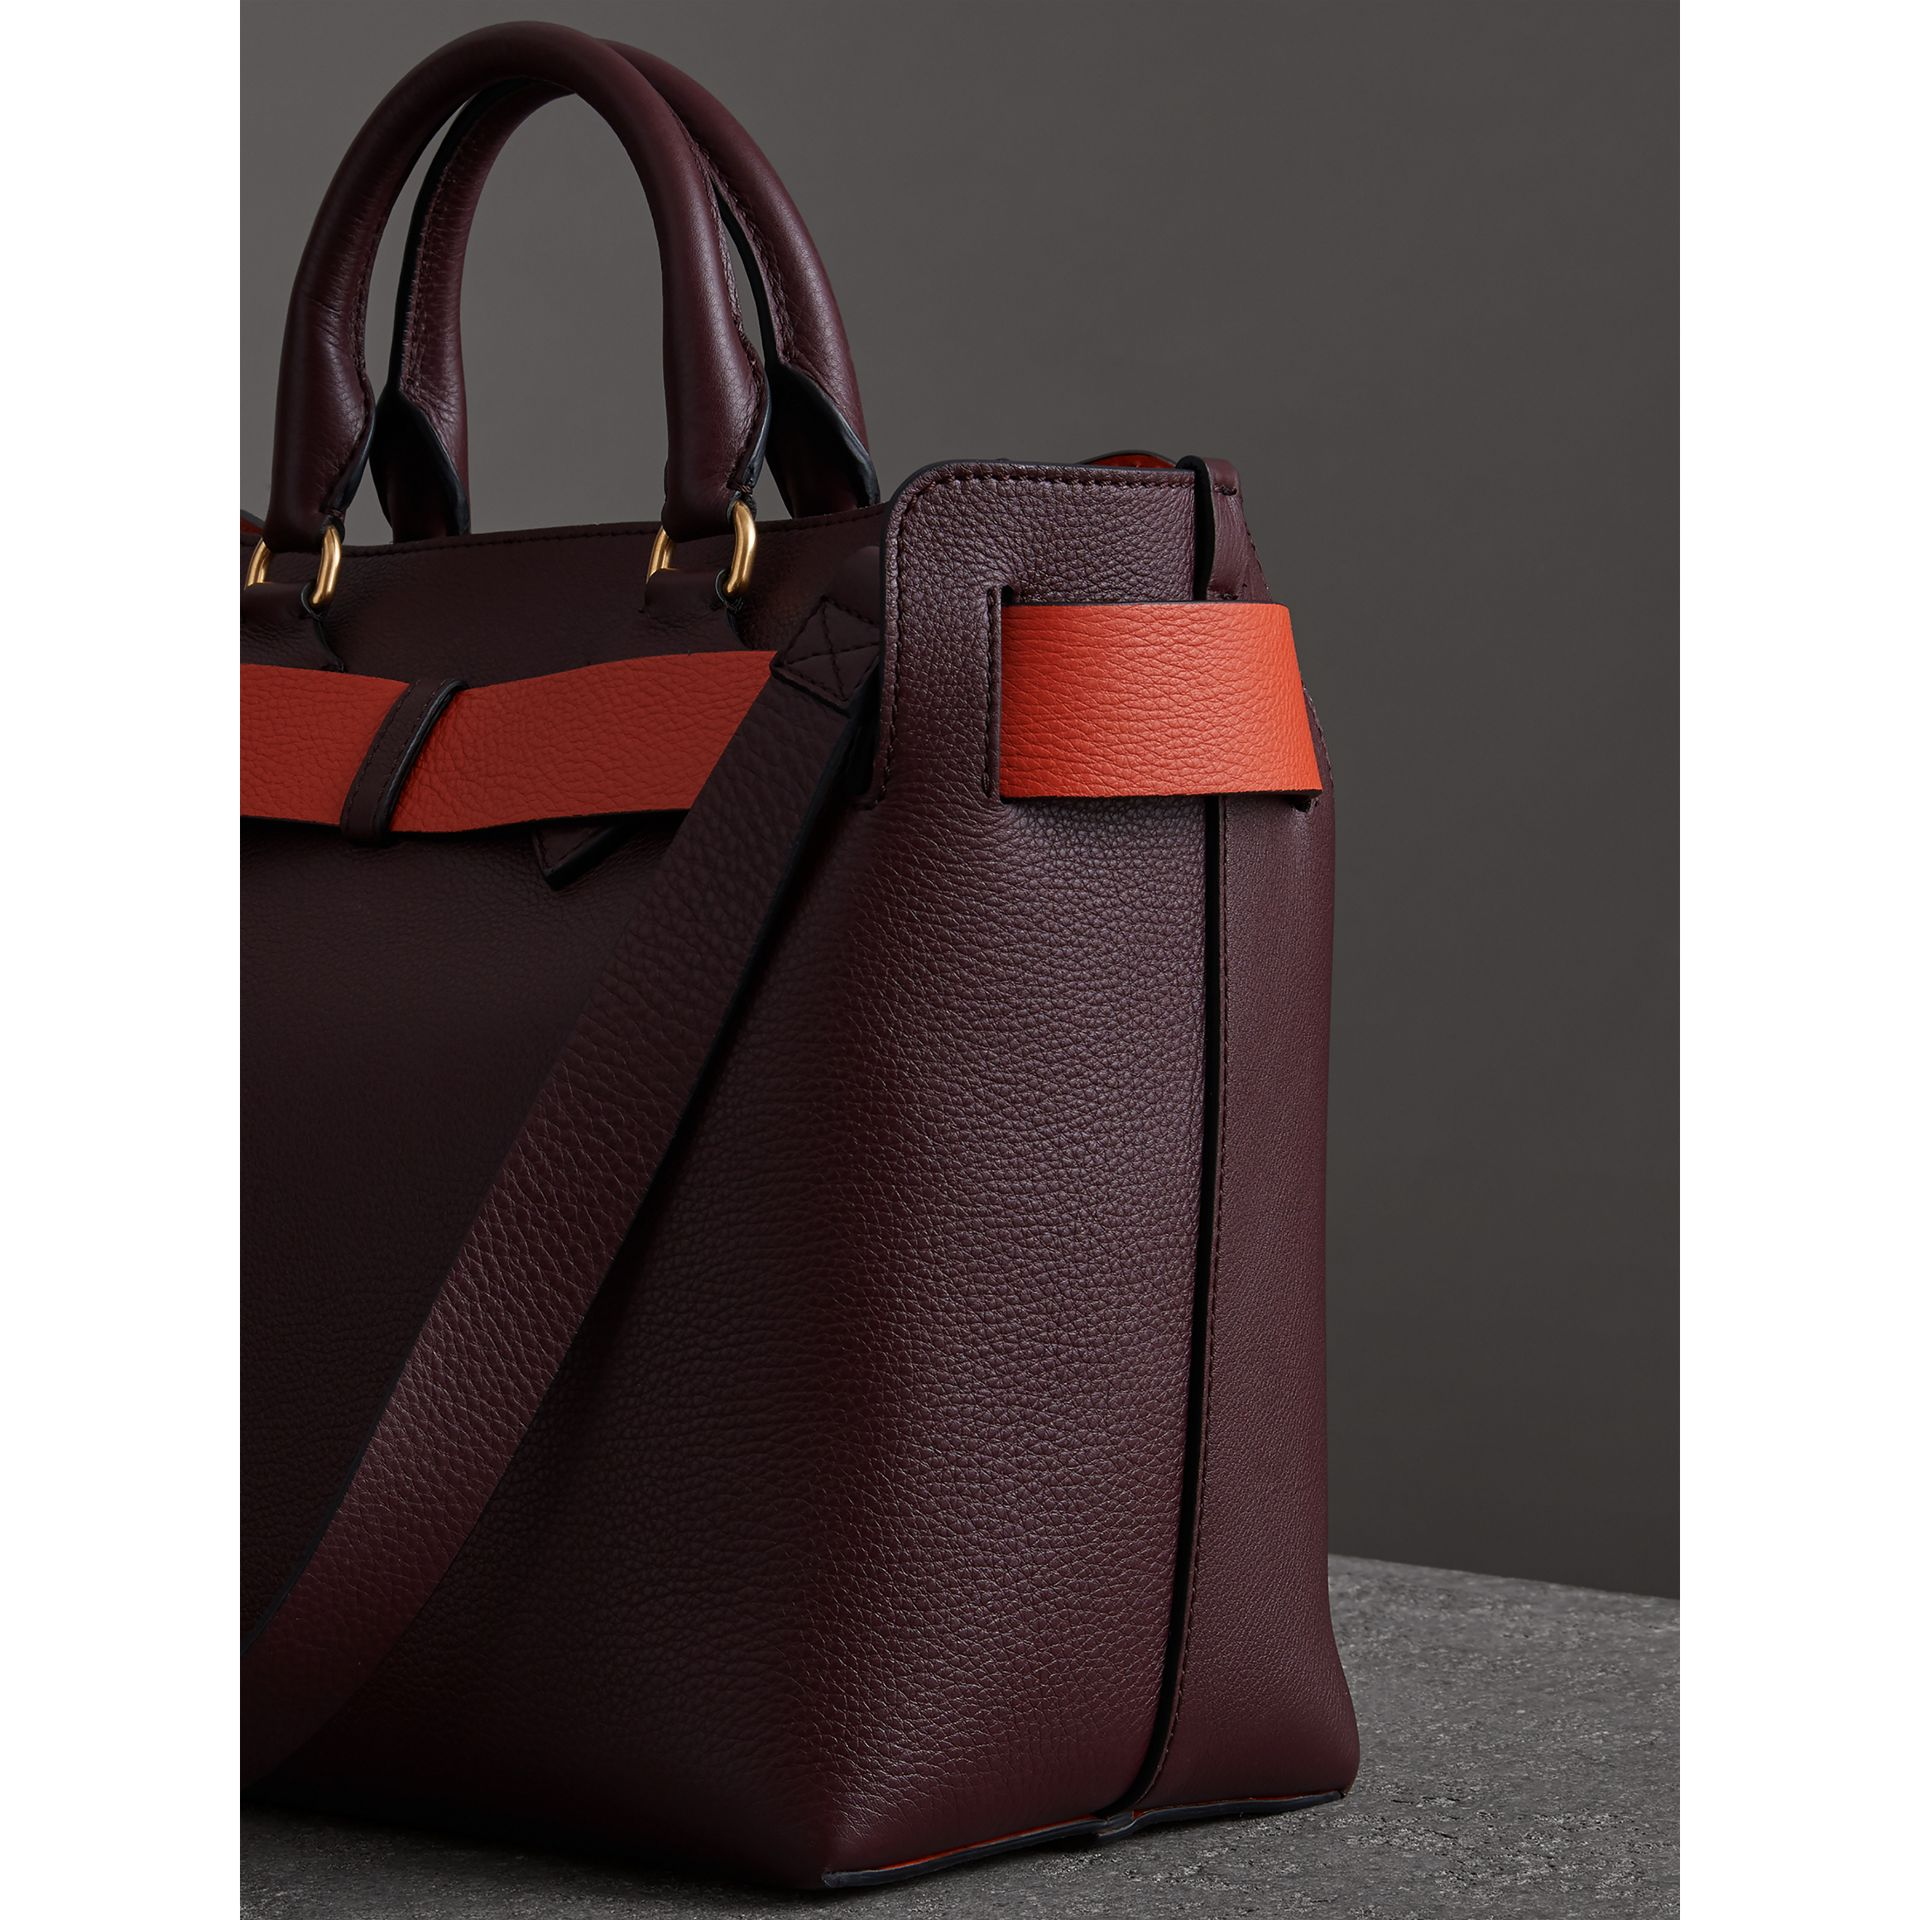 Sac The Belt moyen en cuir (Bordeaux Intense) - Femme | Burberry - photo de la galerie 4